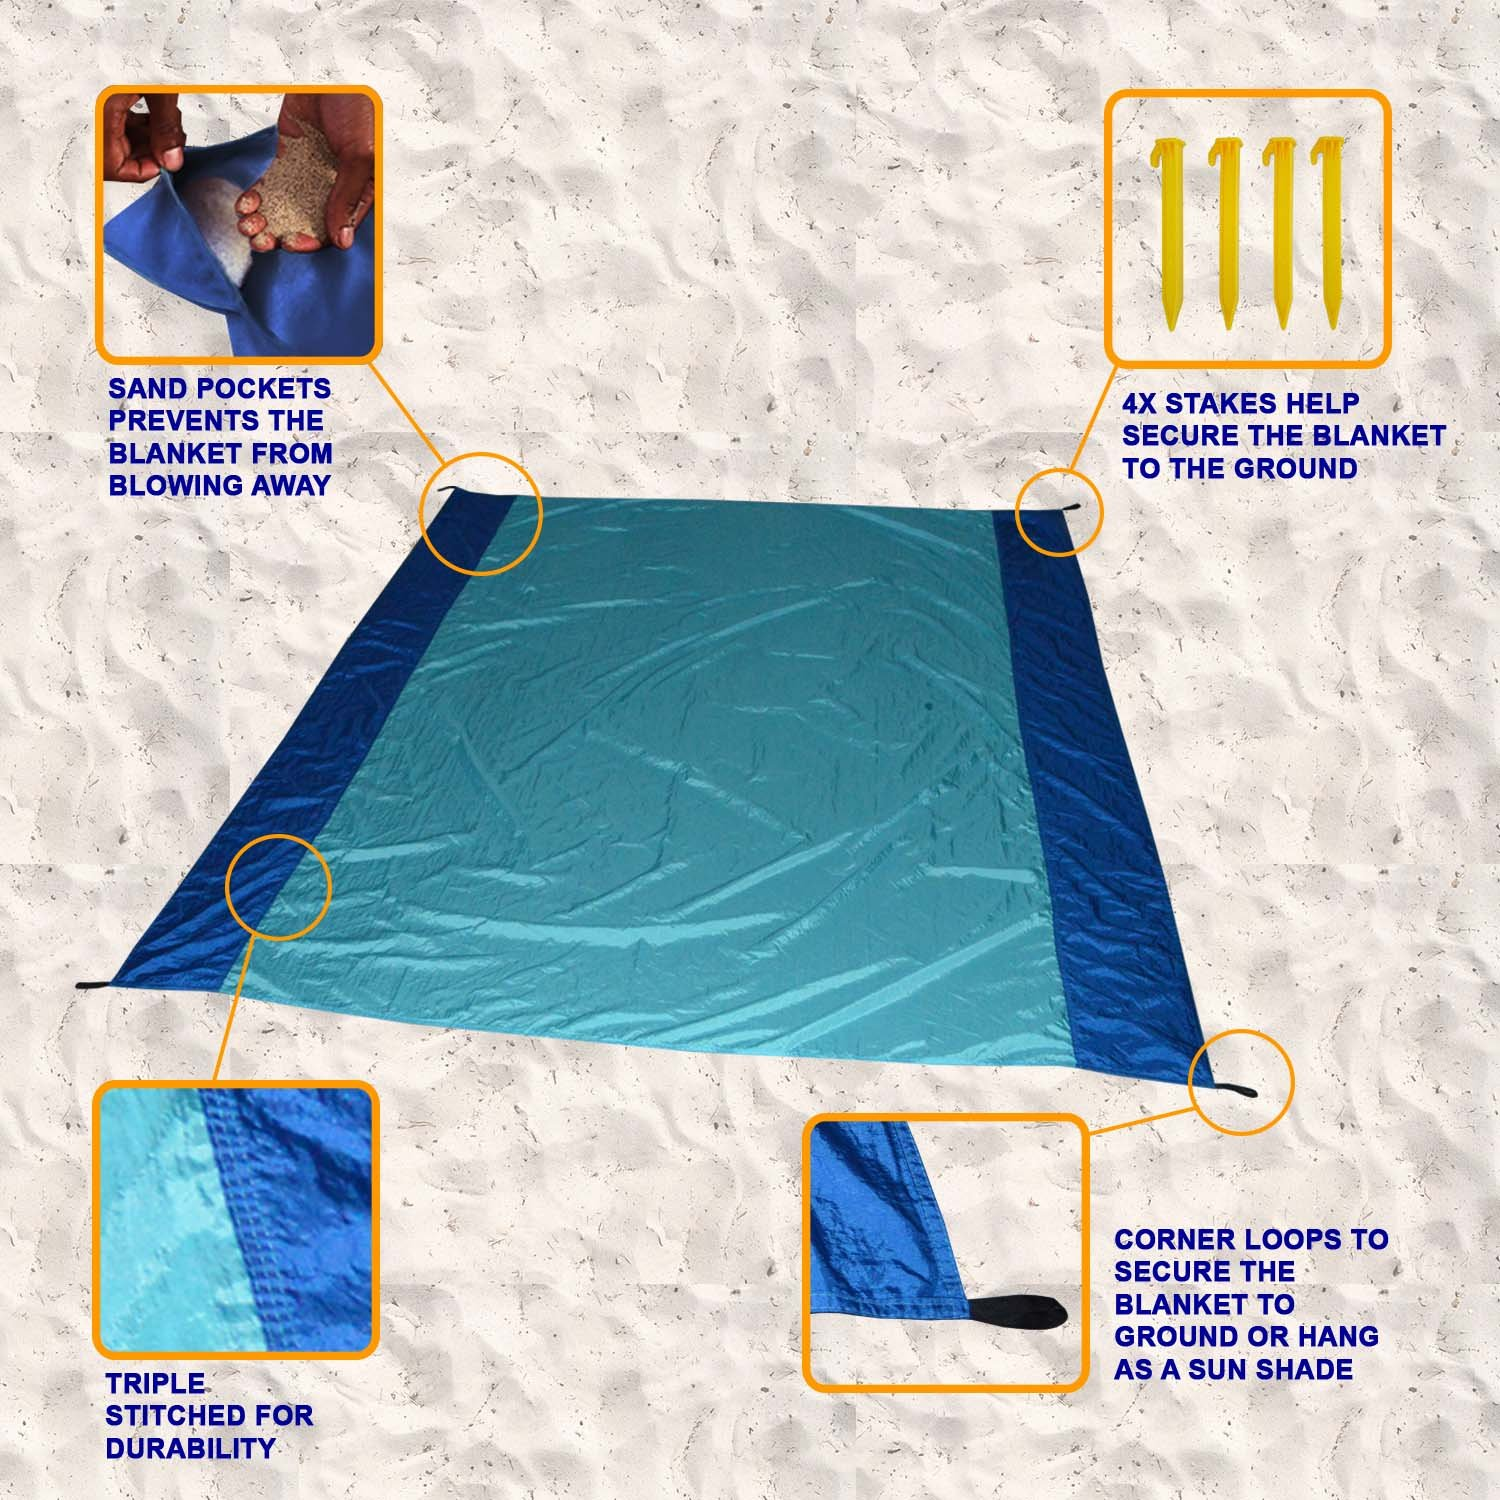 [Pack of 5] Sand Proof Beach Picnic Blanket of Parachute Nylon, works as Shade Tarp Sheet for your Sandless travel escape perfect for drying towel not a black microfiber waterproof or resistant mat by Spencer&Webb (Image #6)